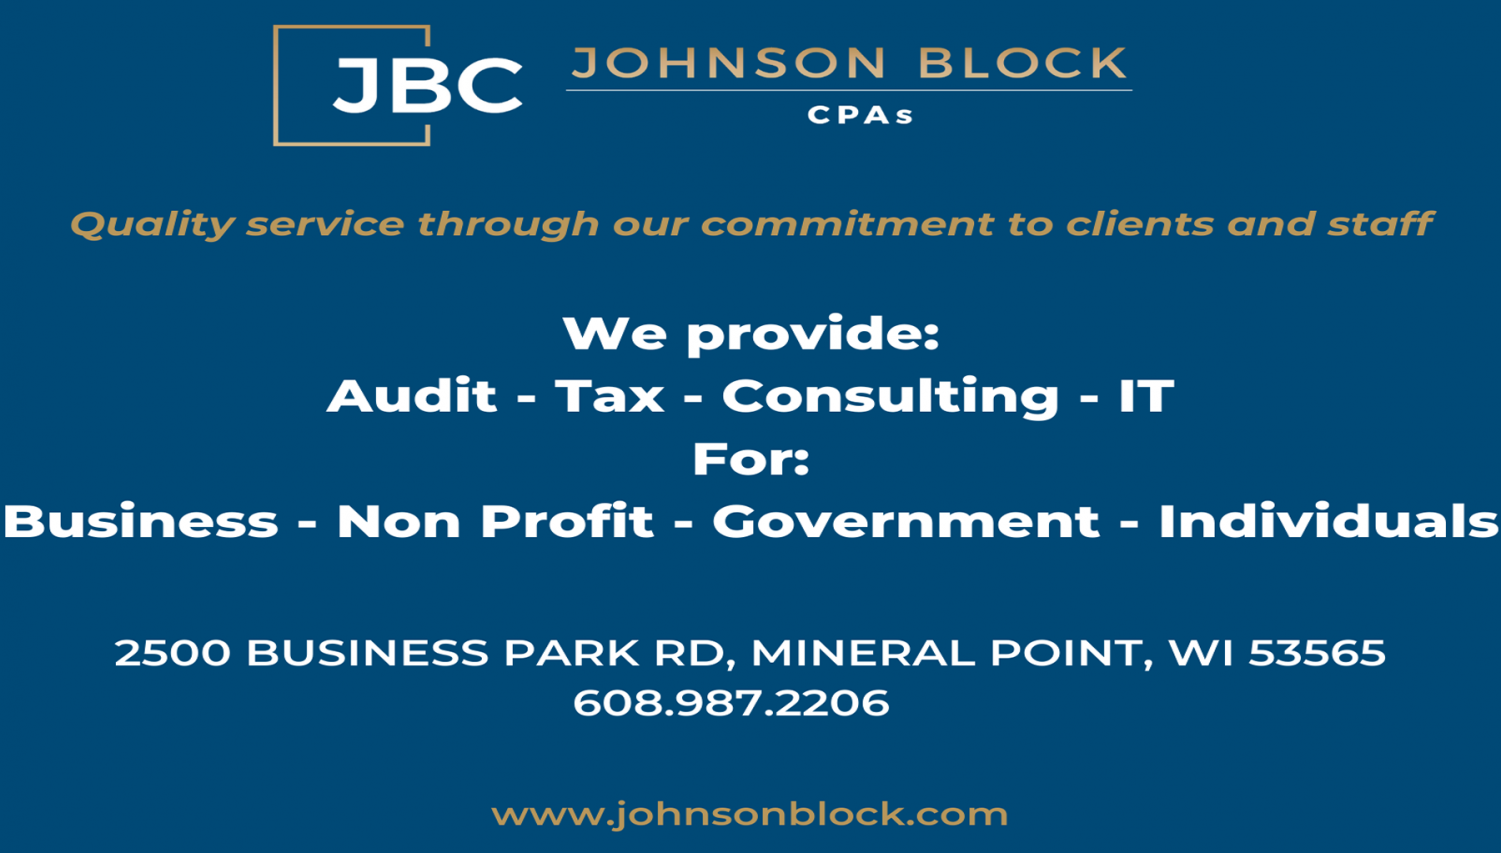 johnsonblock